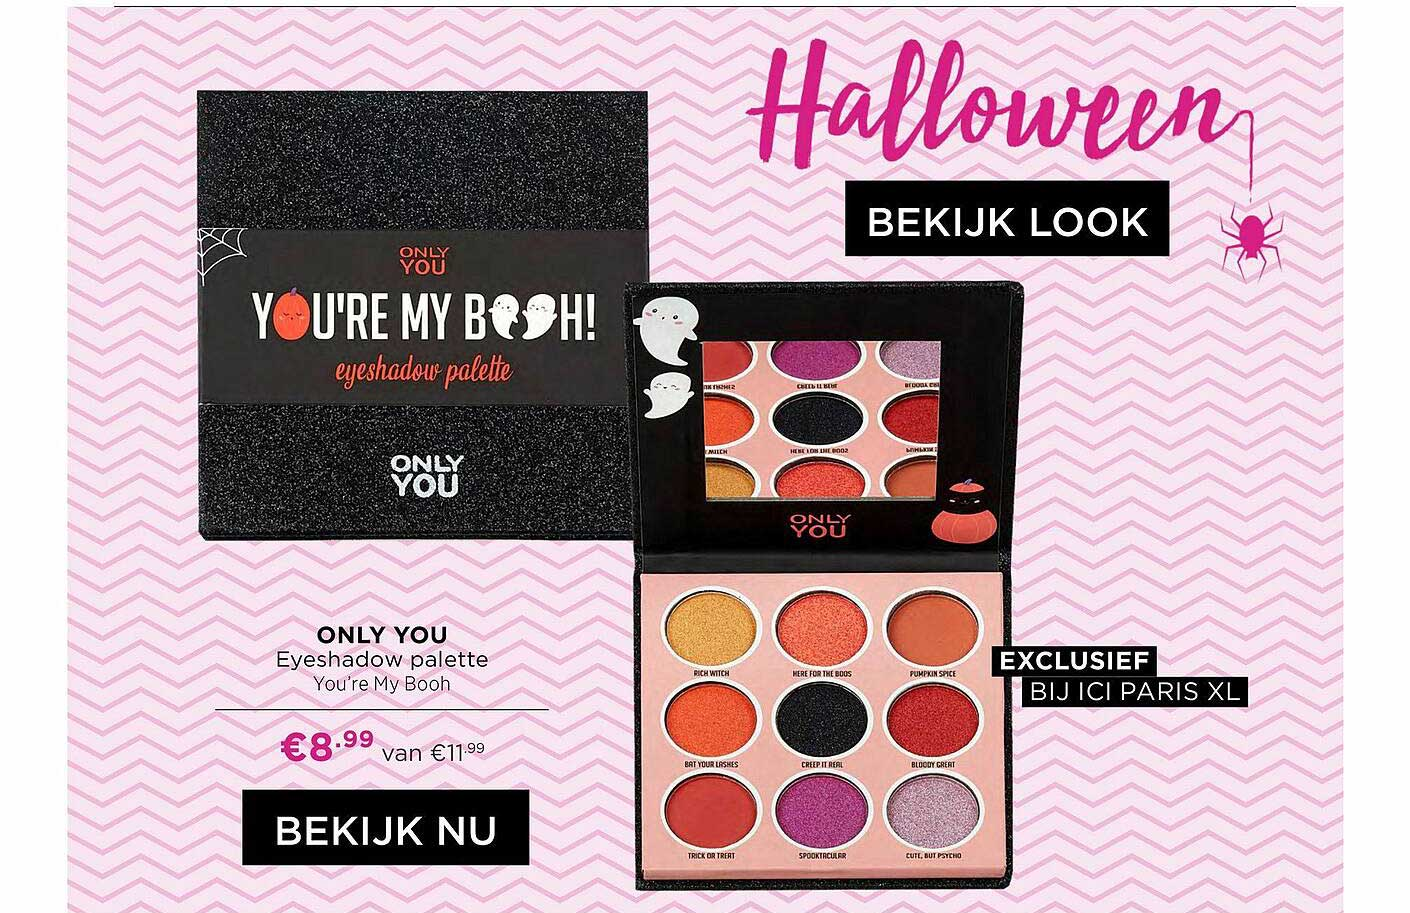 ICI PARIS XL Only You Eyeshadow Palette You're My Booh